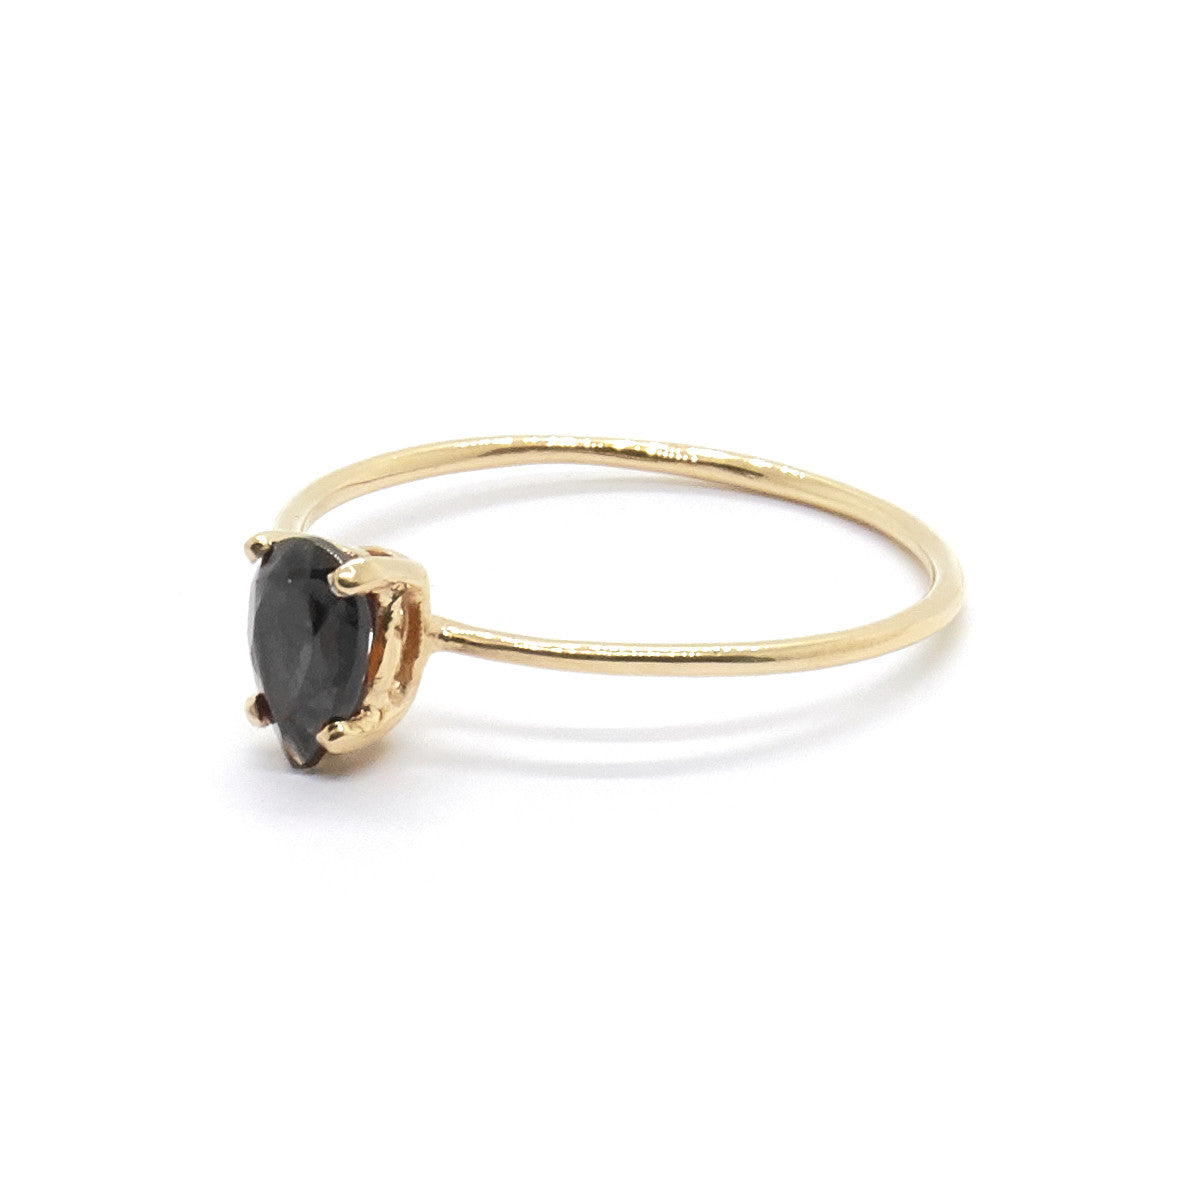 Tiny Pear Ring with Black Spinel